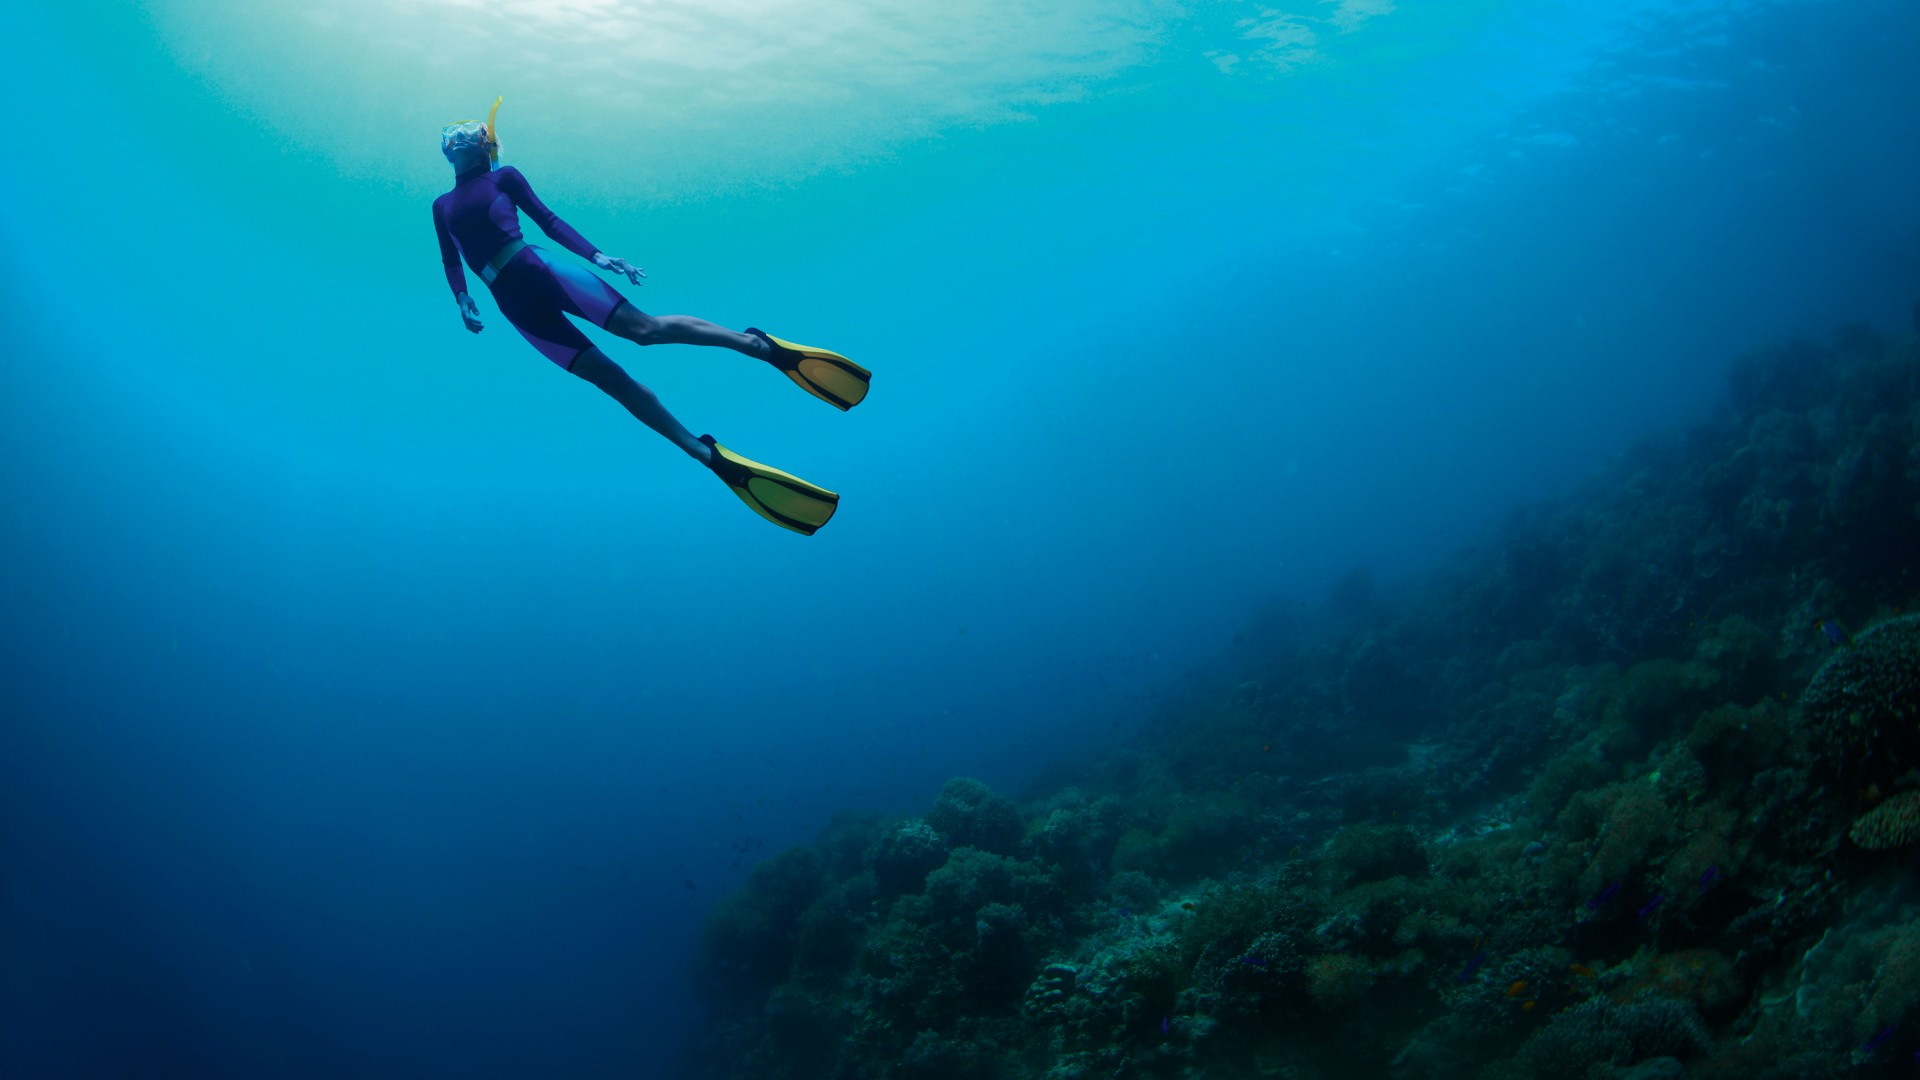 Taking The Plunge: Free Diving In The Caribbean